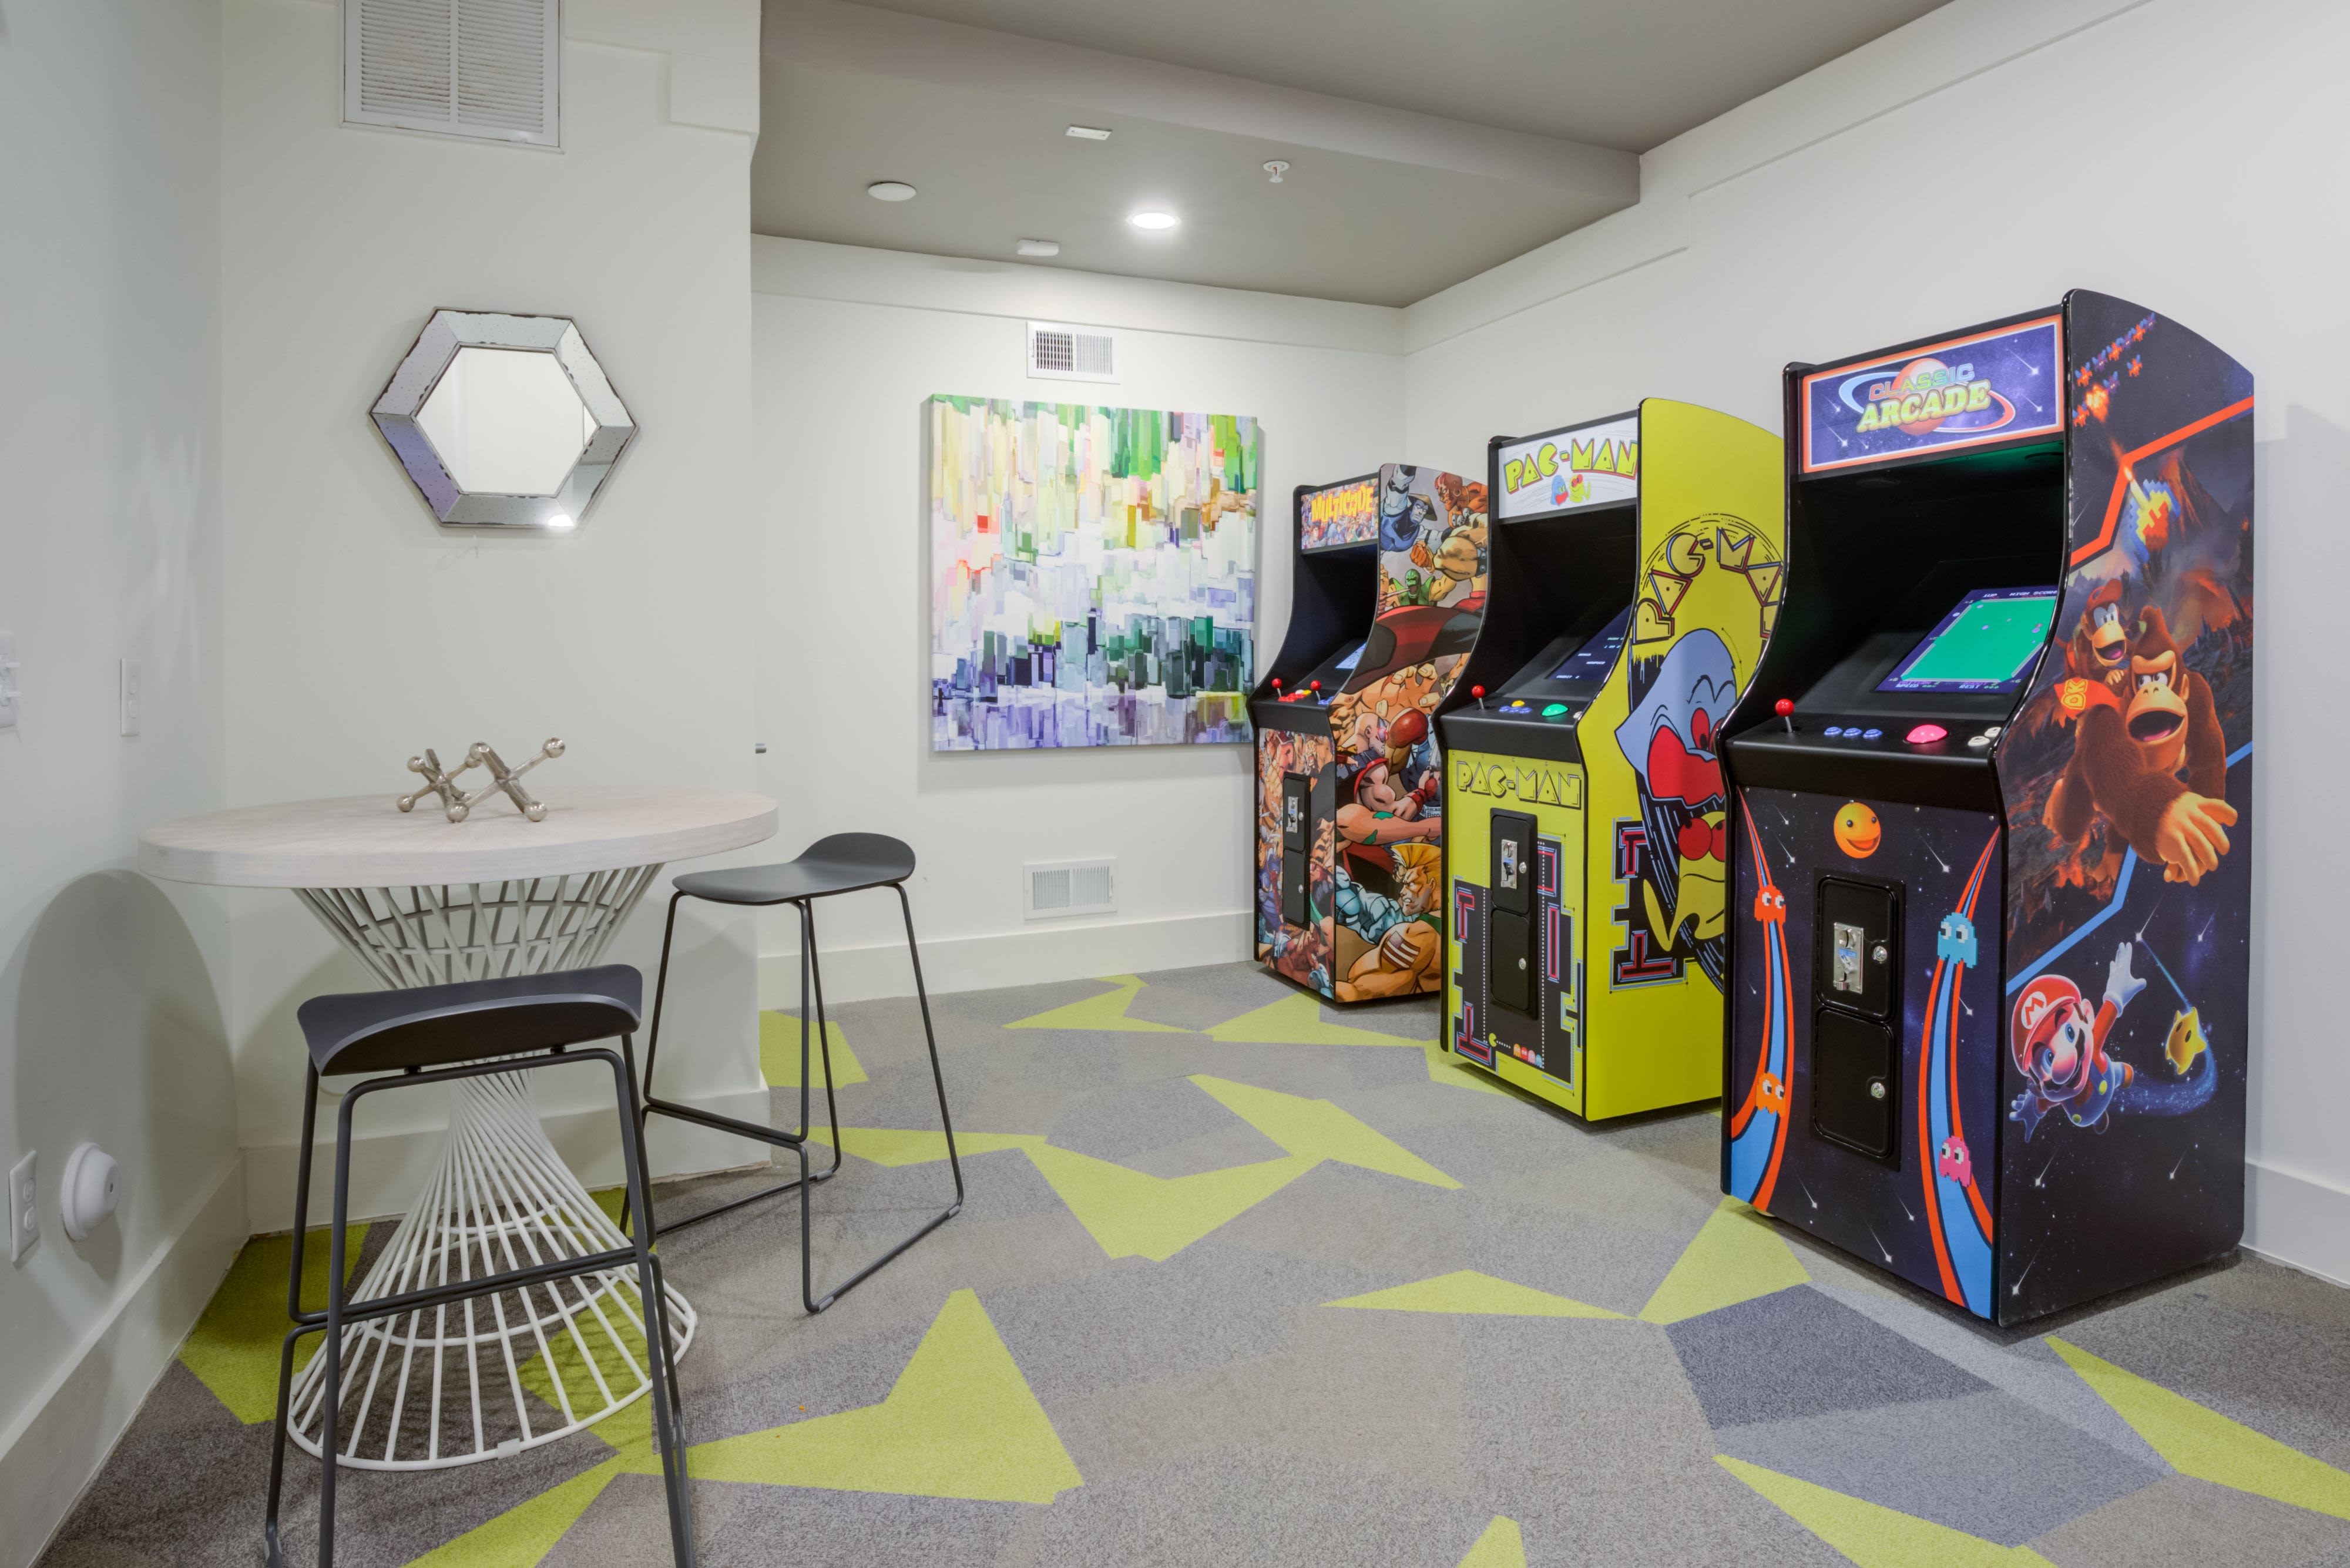 Game room with arcade games at Celsius Apartment Homes in Charlotte, North Carolina